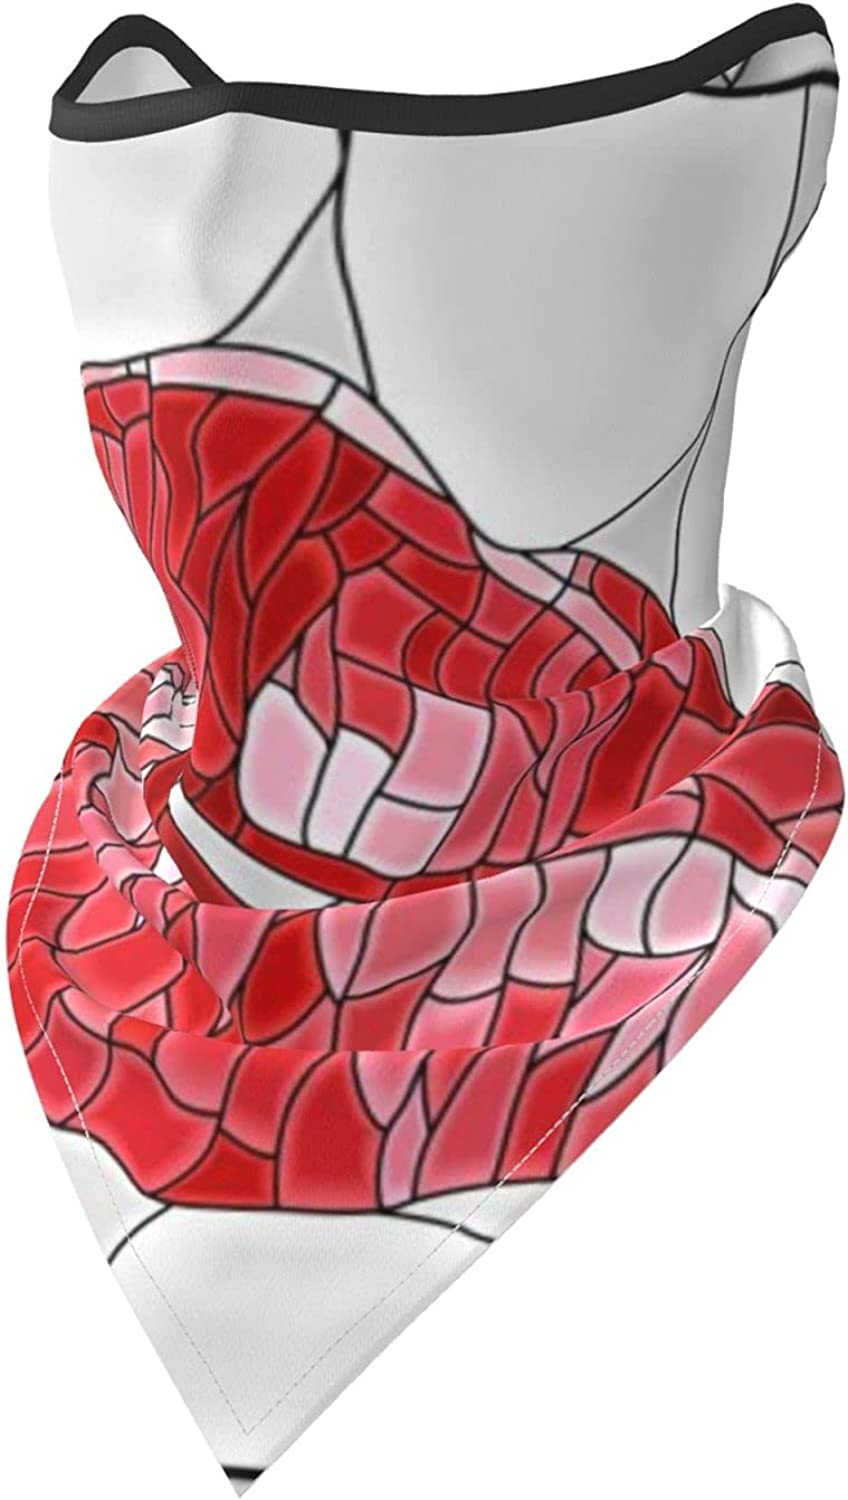 Mosaic Lip Breathable Bandana Face Mask Neck Gaiter Windproof Sports Mask Scarf Headwear for Men Women Outdoor Hiking Cycling Running Motorcycling